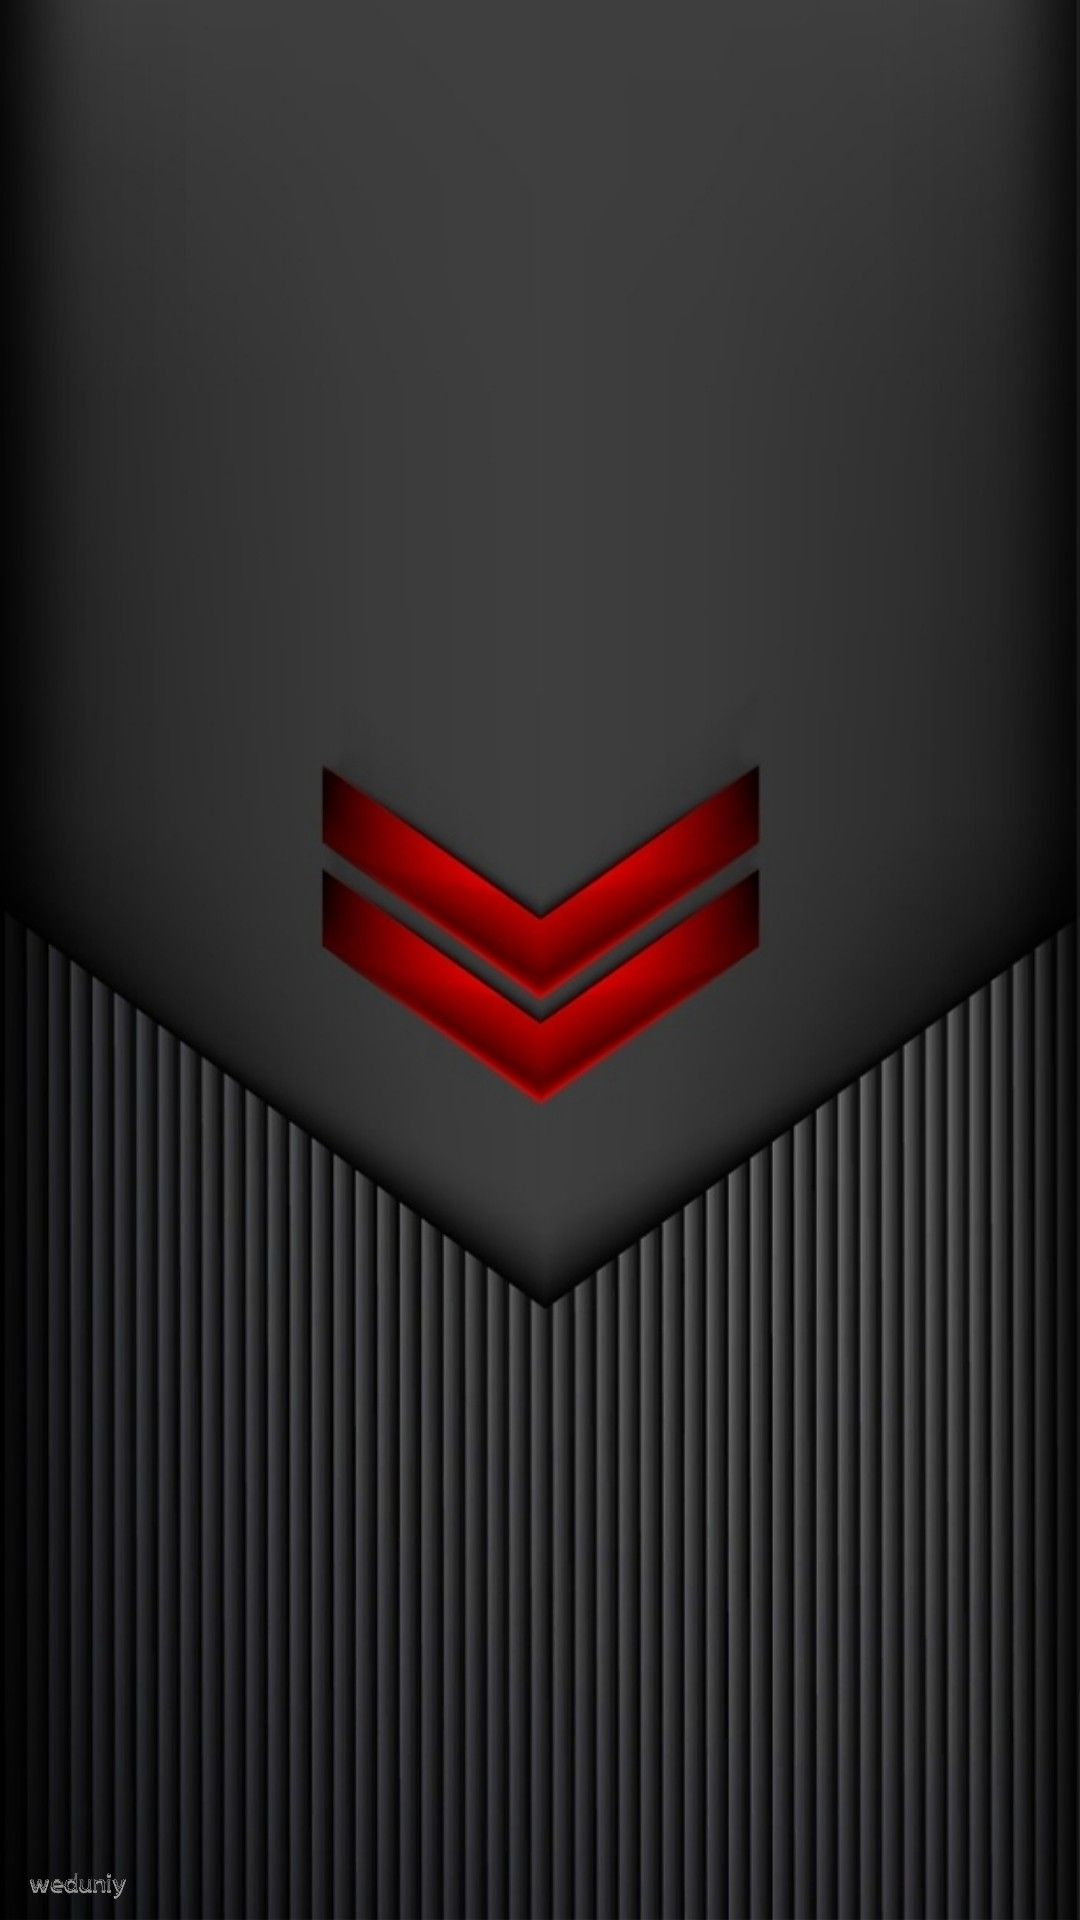 Red On Black Chevron Abstract Iphone Wallpaper Android Wallpaper Abstract Black Chevron Wallpaper